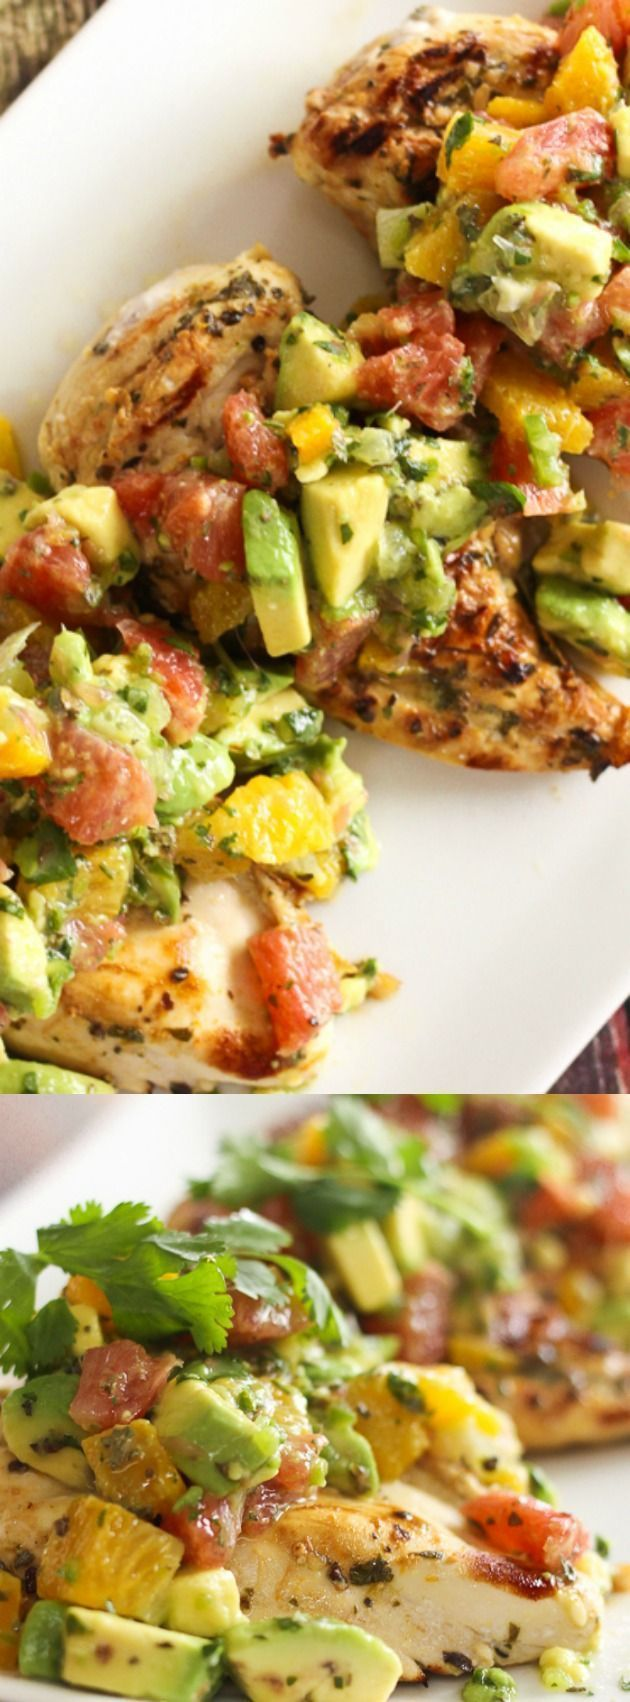 These Citrus Avocado Chicken from Favorite Family Recipes is a bright and summer